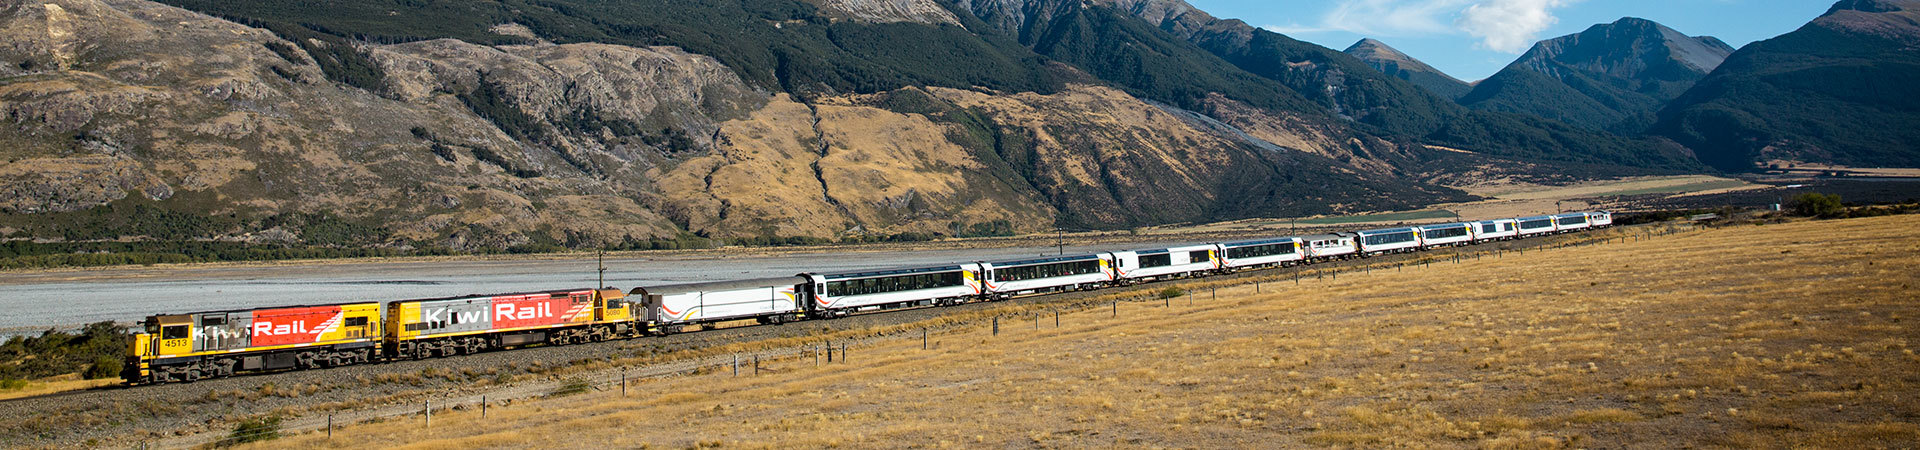 TranzAlpine scenic Train New Zealand